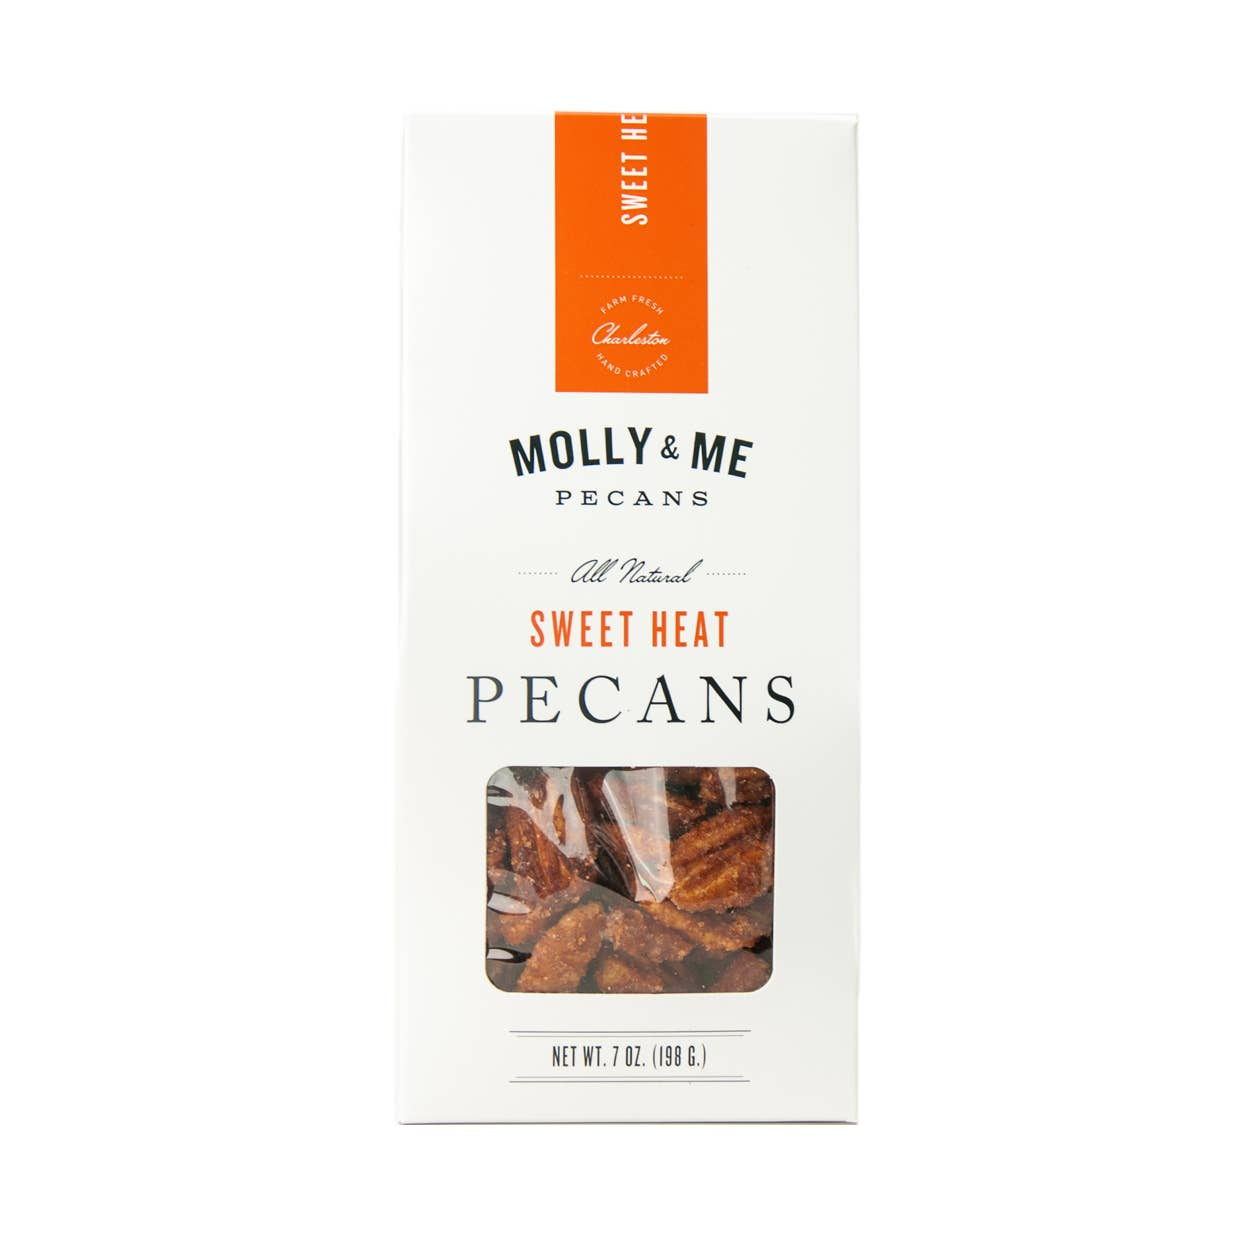 Molly and Me Pecans - Sweet Heat Pecans